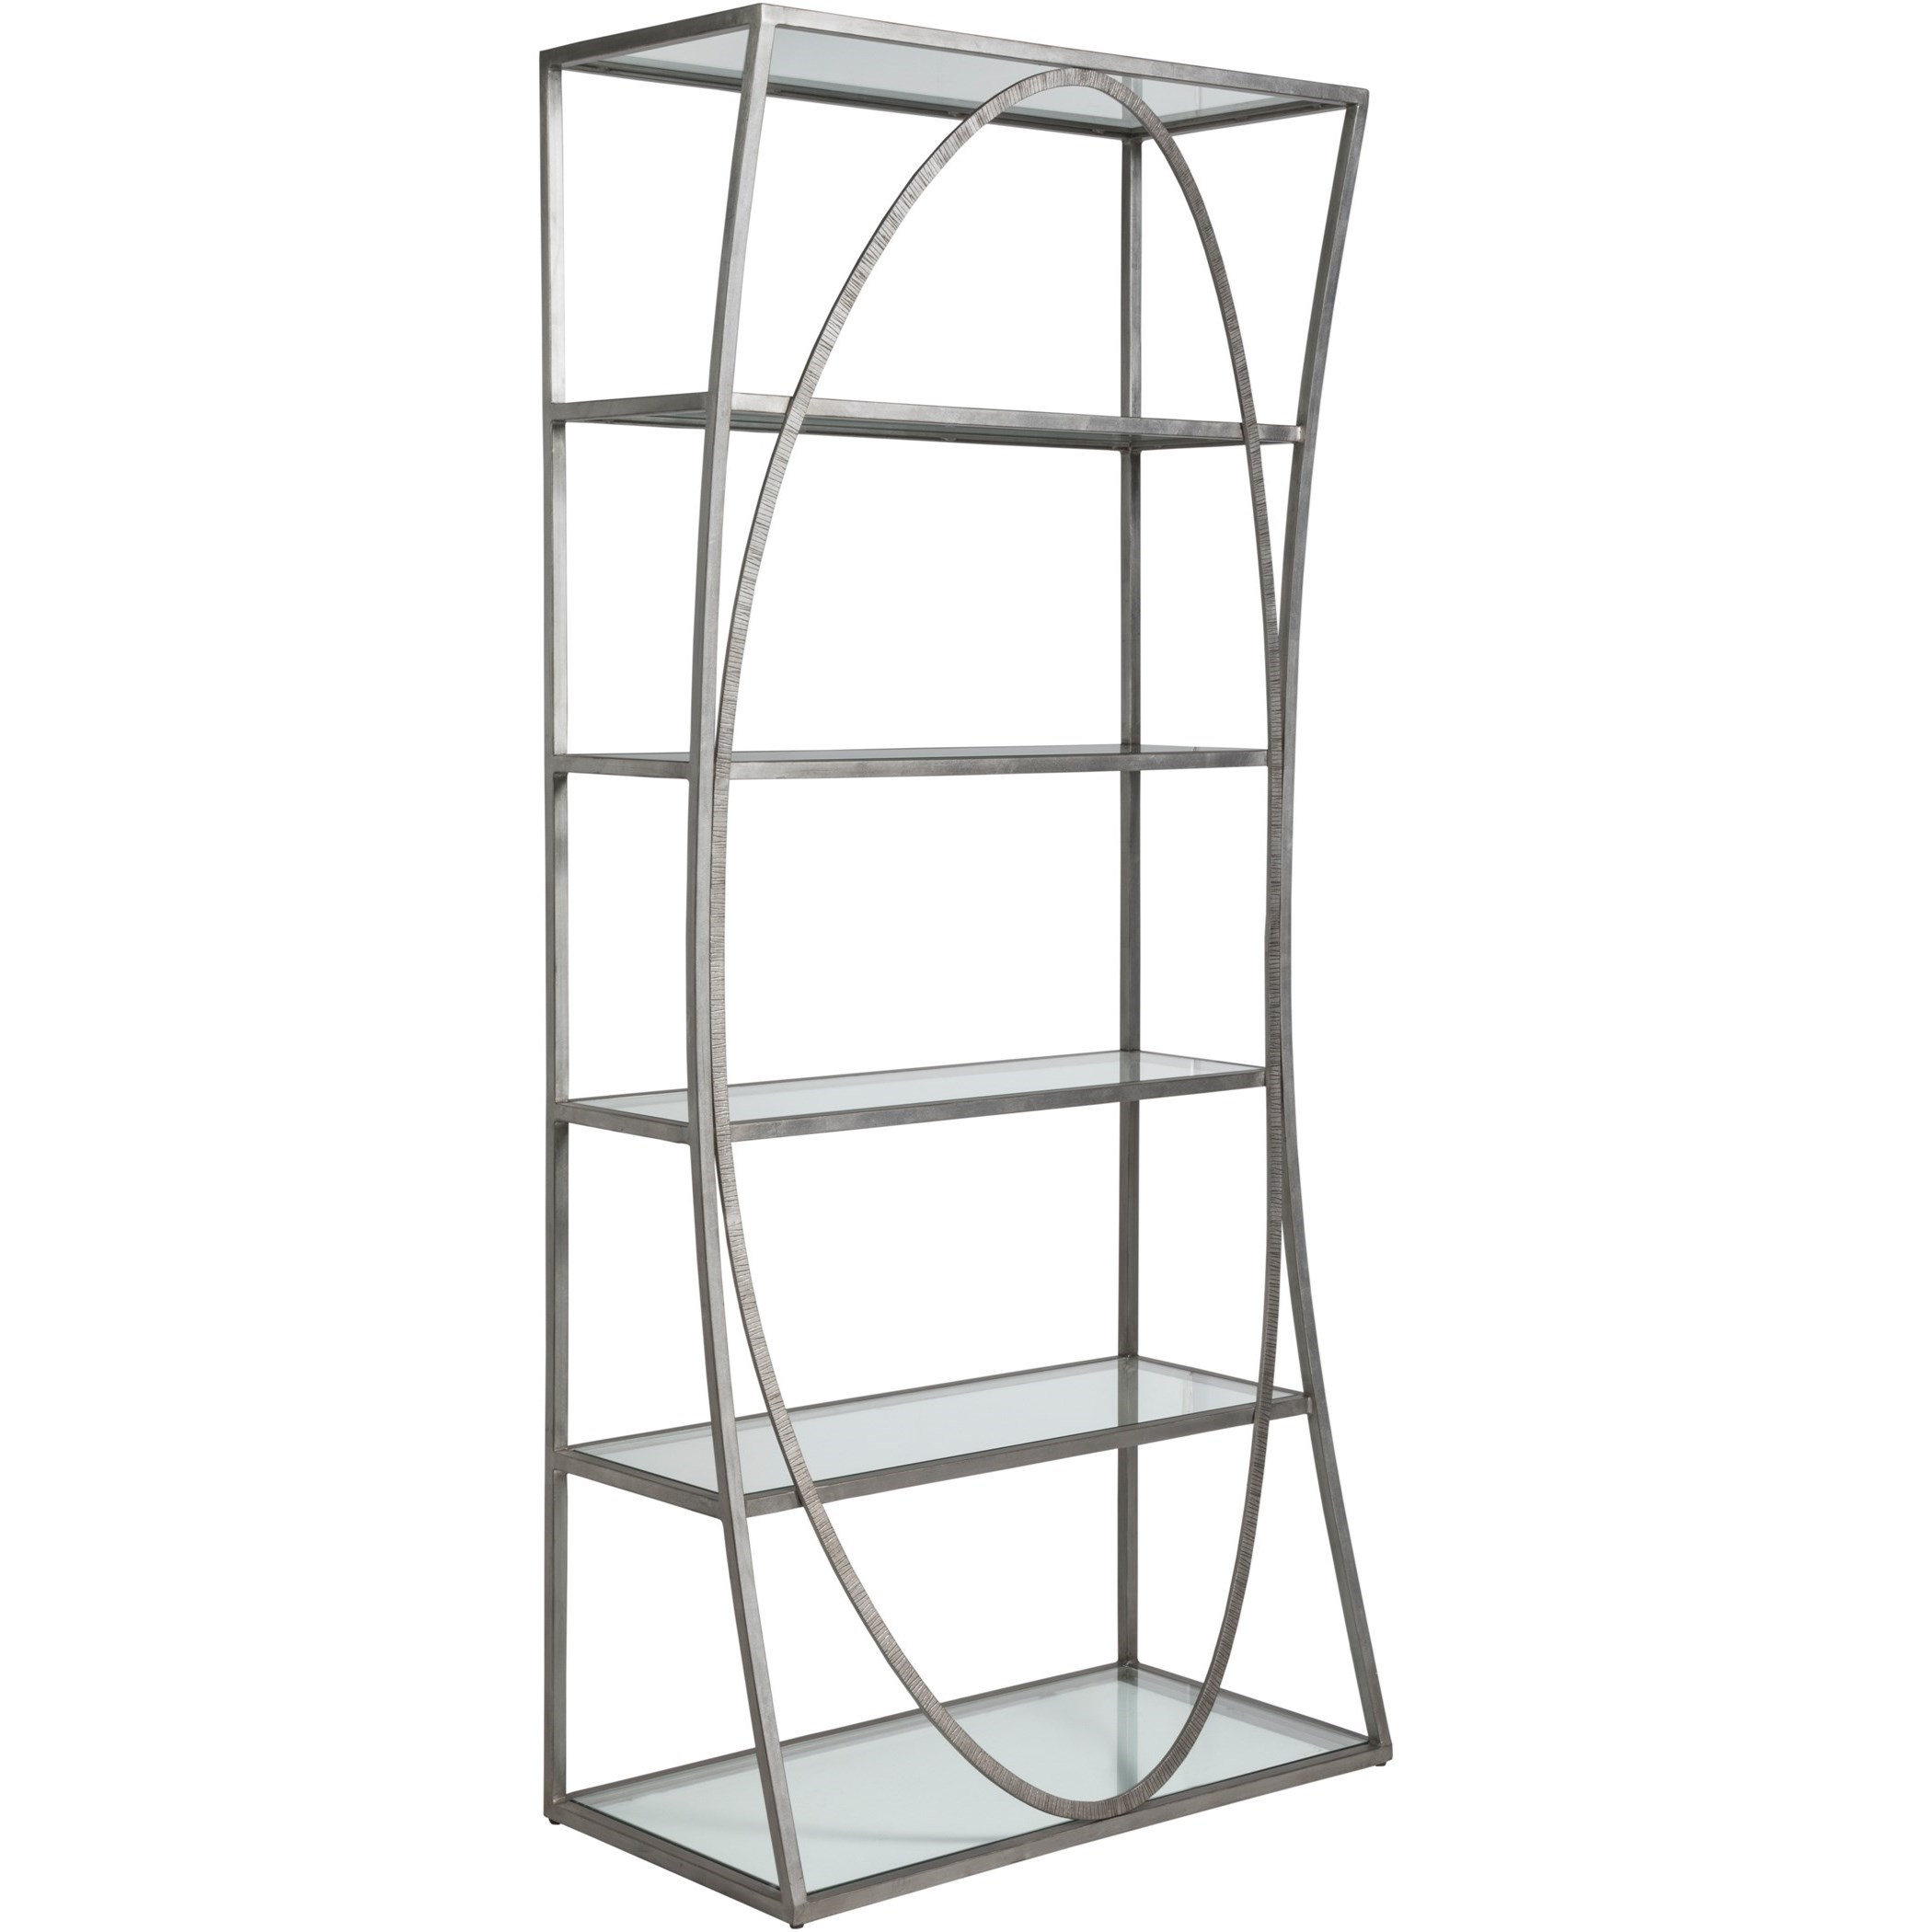 Metal Designs Ellipse Etagere by Artistica at Alison Craig Home Furnishings